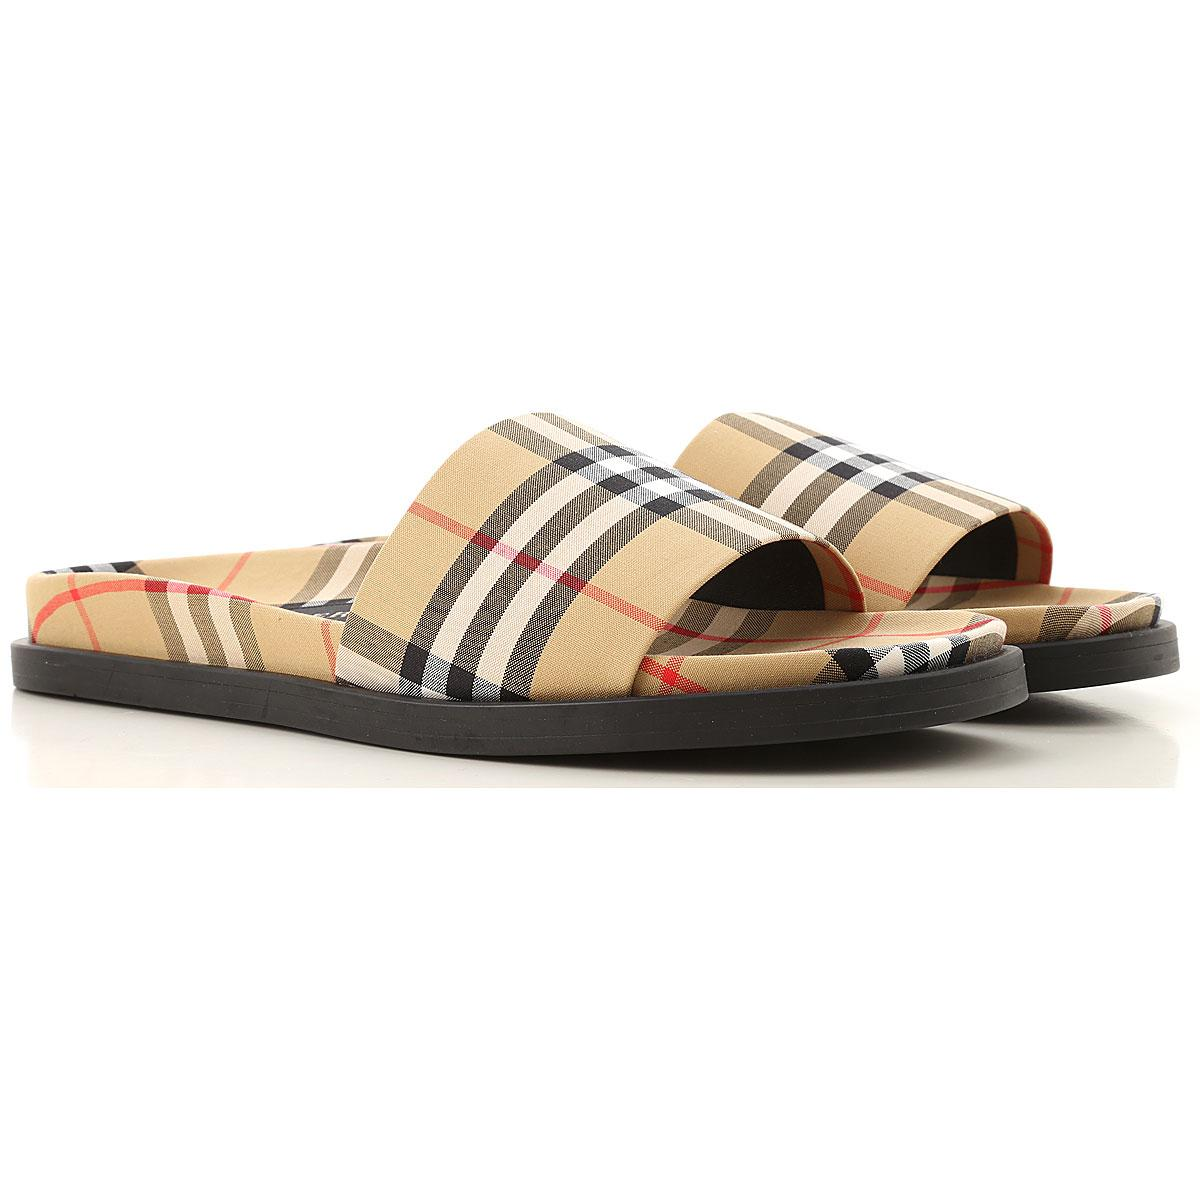 24604277a Lyst - Burberry Sandals For Men in Natural for Men